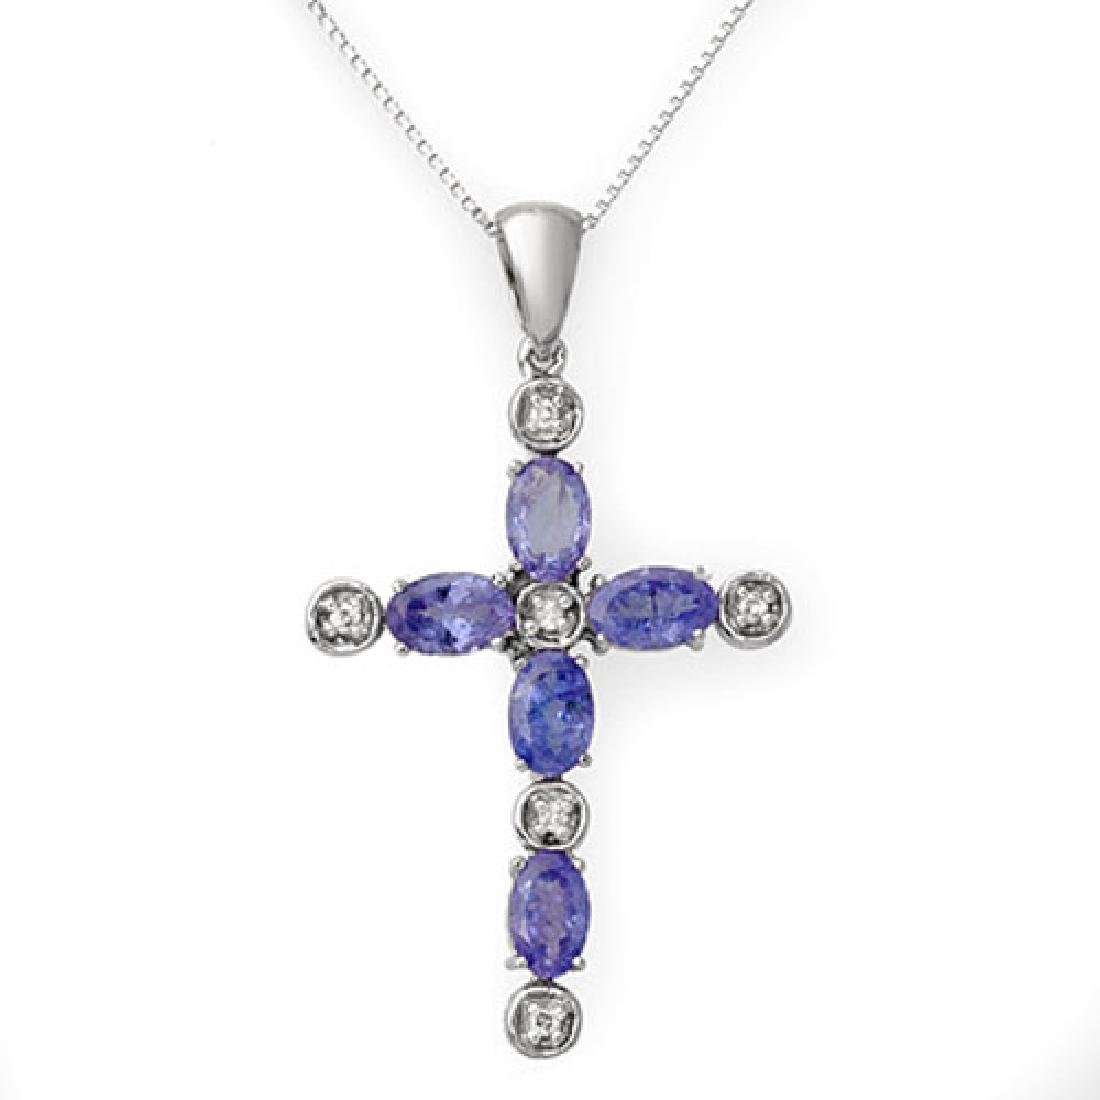 3.15 CTW Tanzanite & Diamond Necklace 10K White Gold